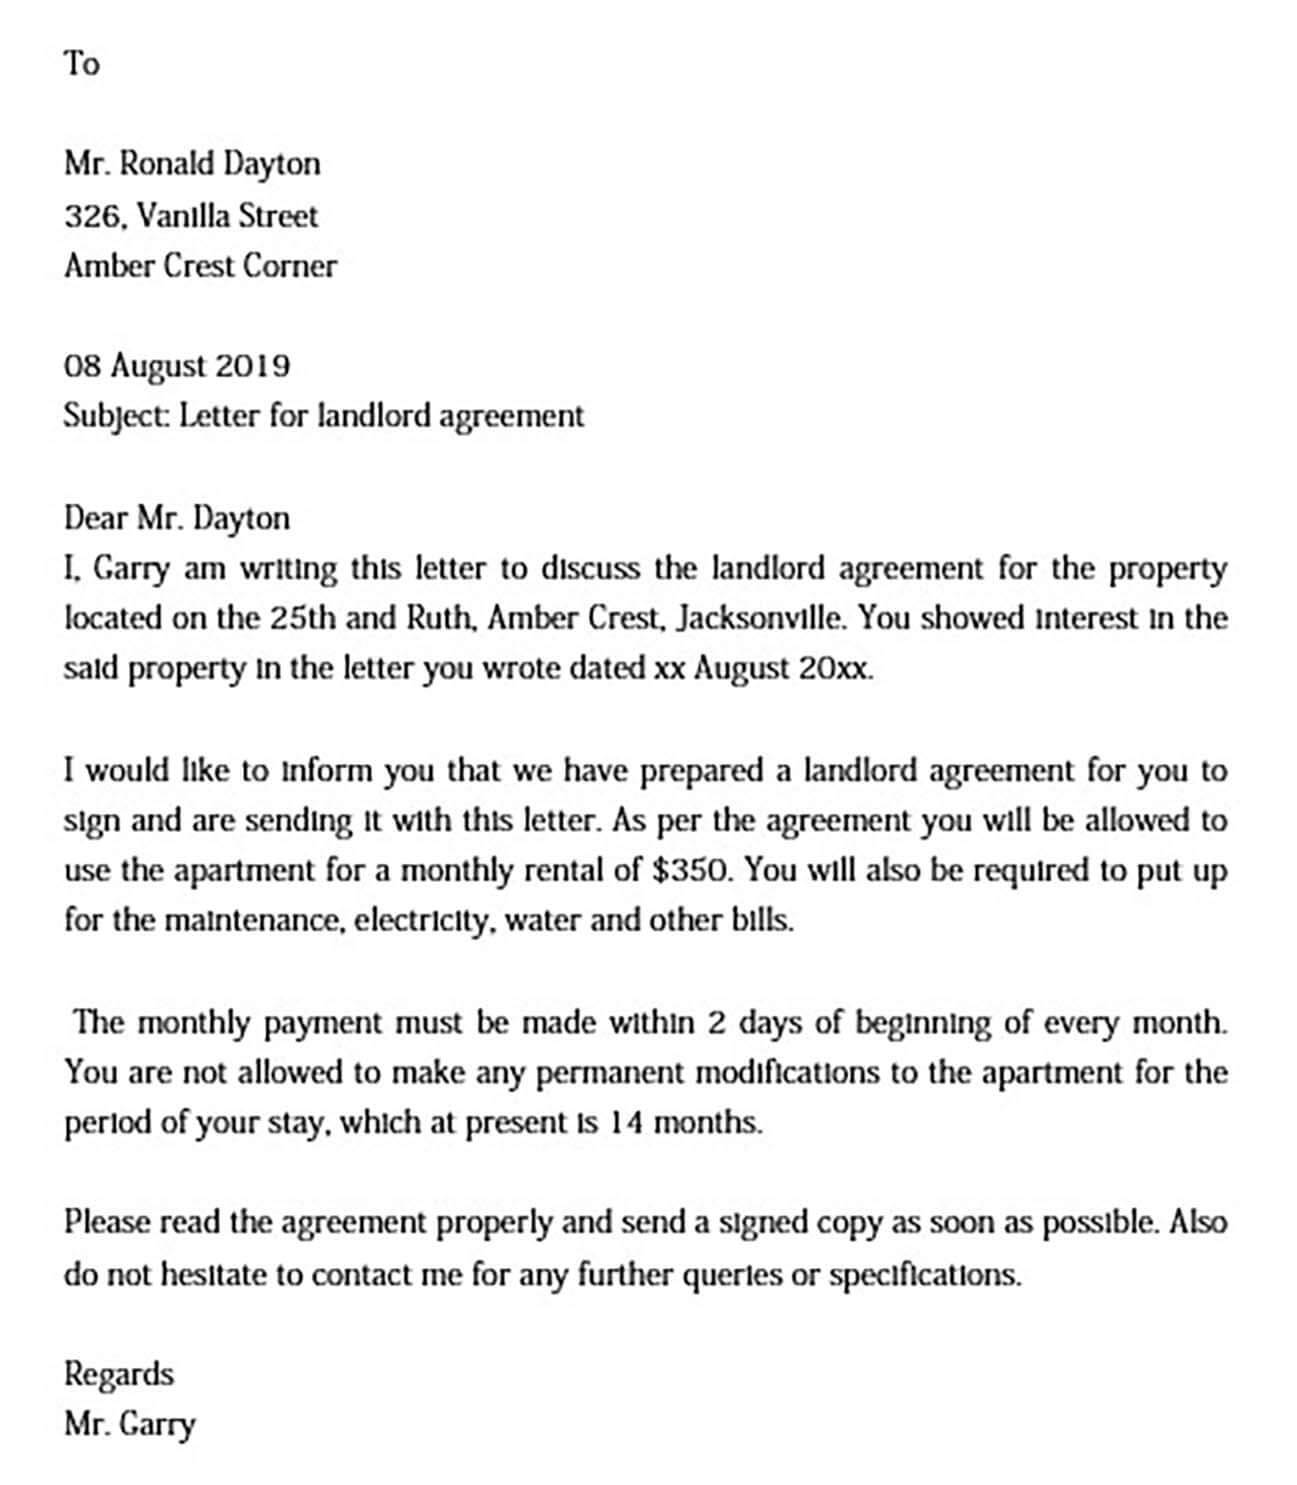 Landlord Agreement Letter